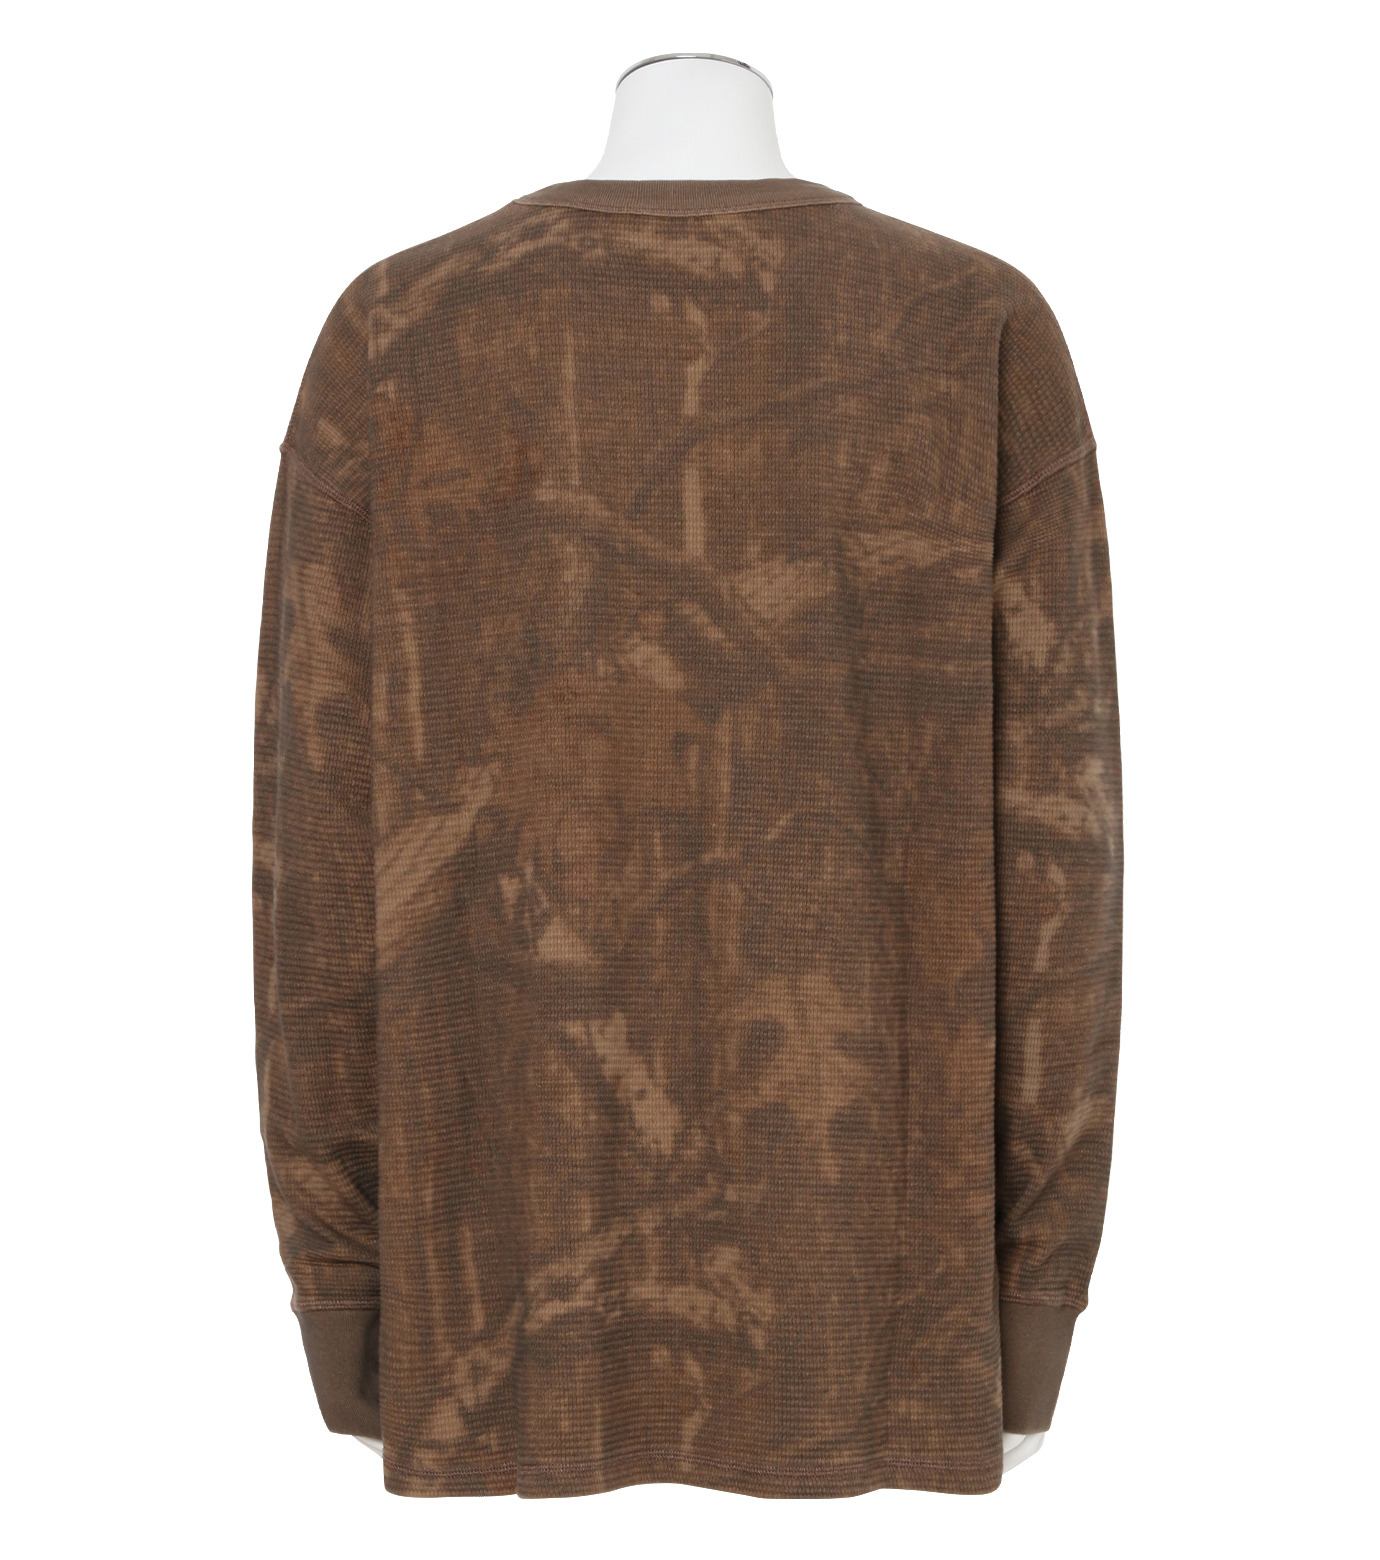 YEEZY(イージー)のTHERMAL LONG SLEEVE-KHAKI(カットソー/cut and sewn)-KW3M103-117-24 拡大詳細画像2